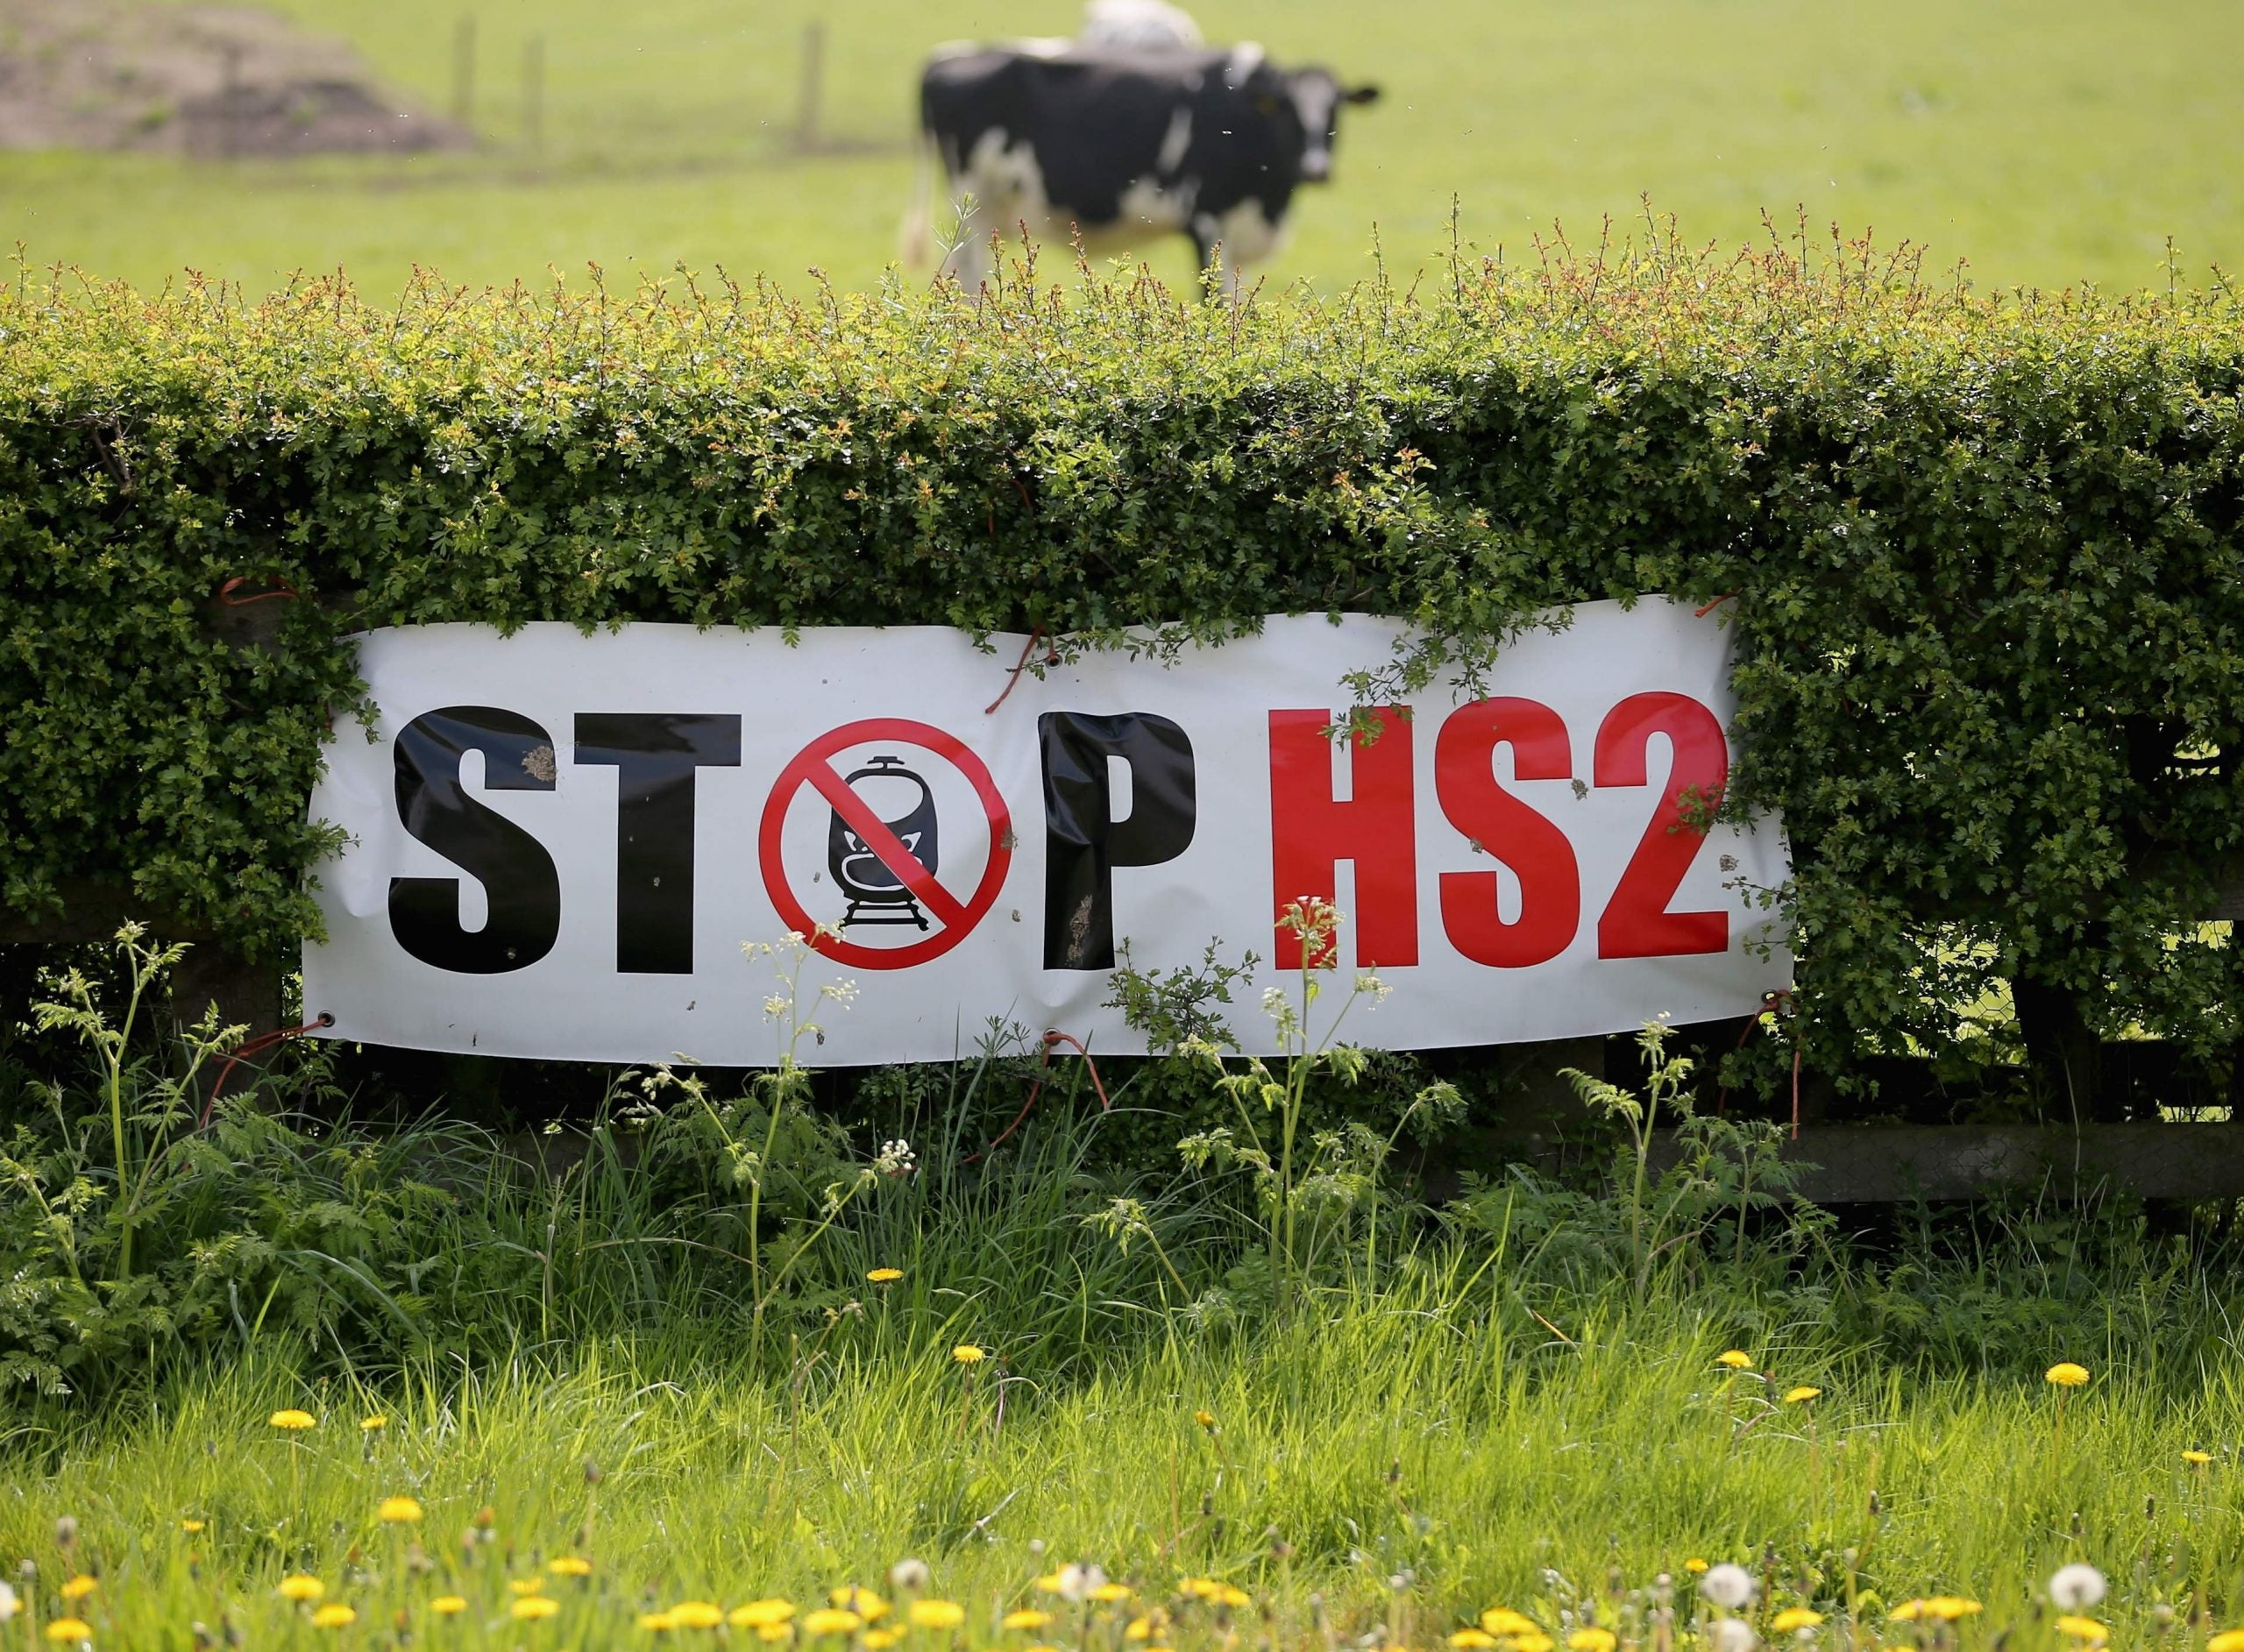 White nights in Sweden, the plight of circus animals and the spiralling cost of HS2